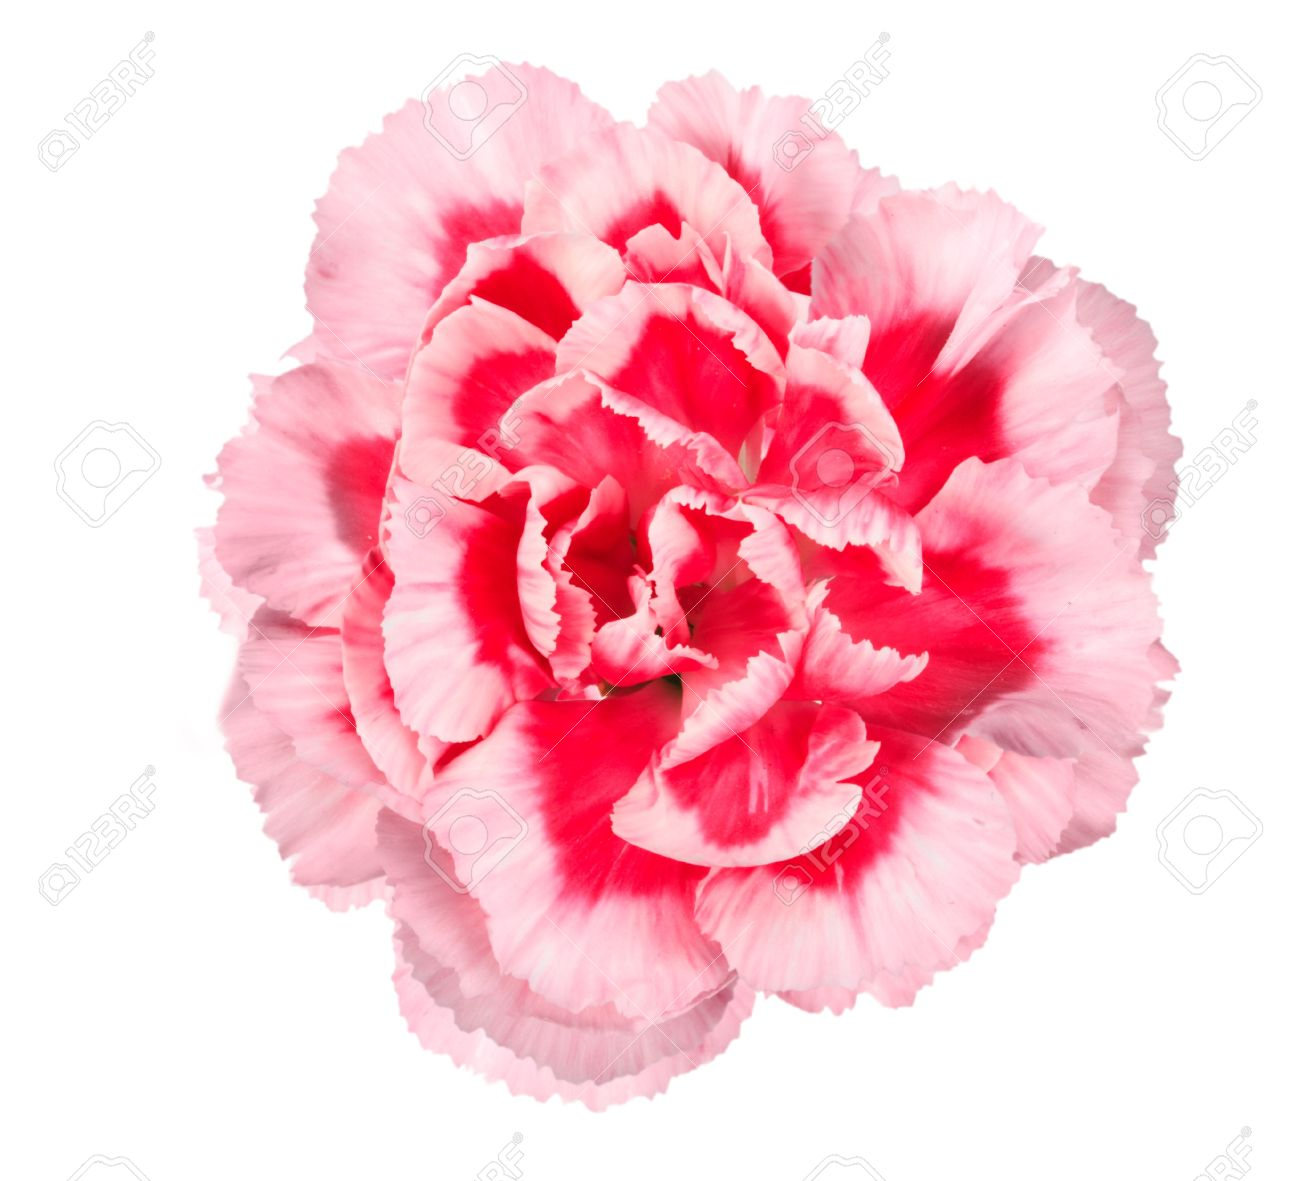 One A Pink Flower Of Carnation Close Up Isolated On White